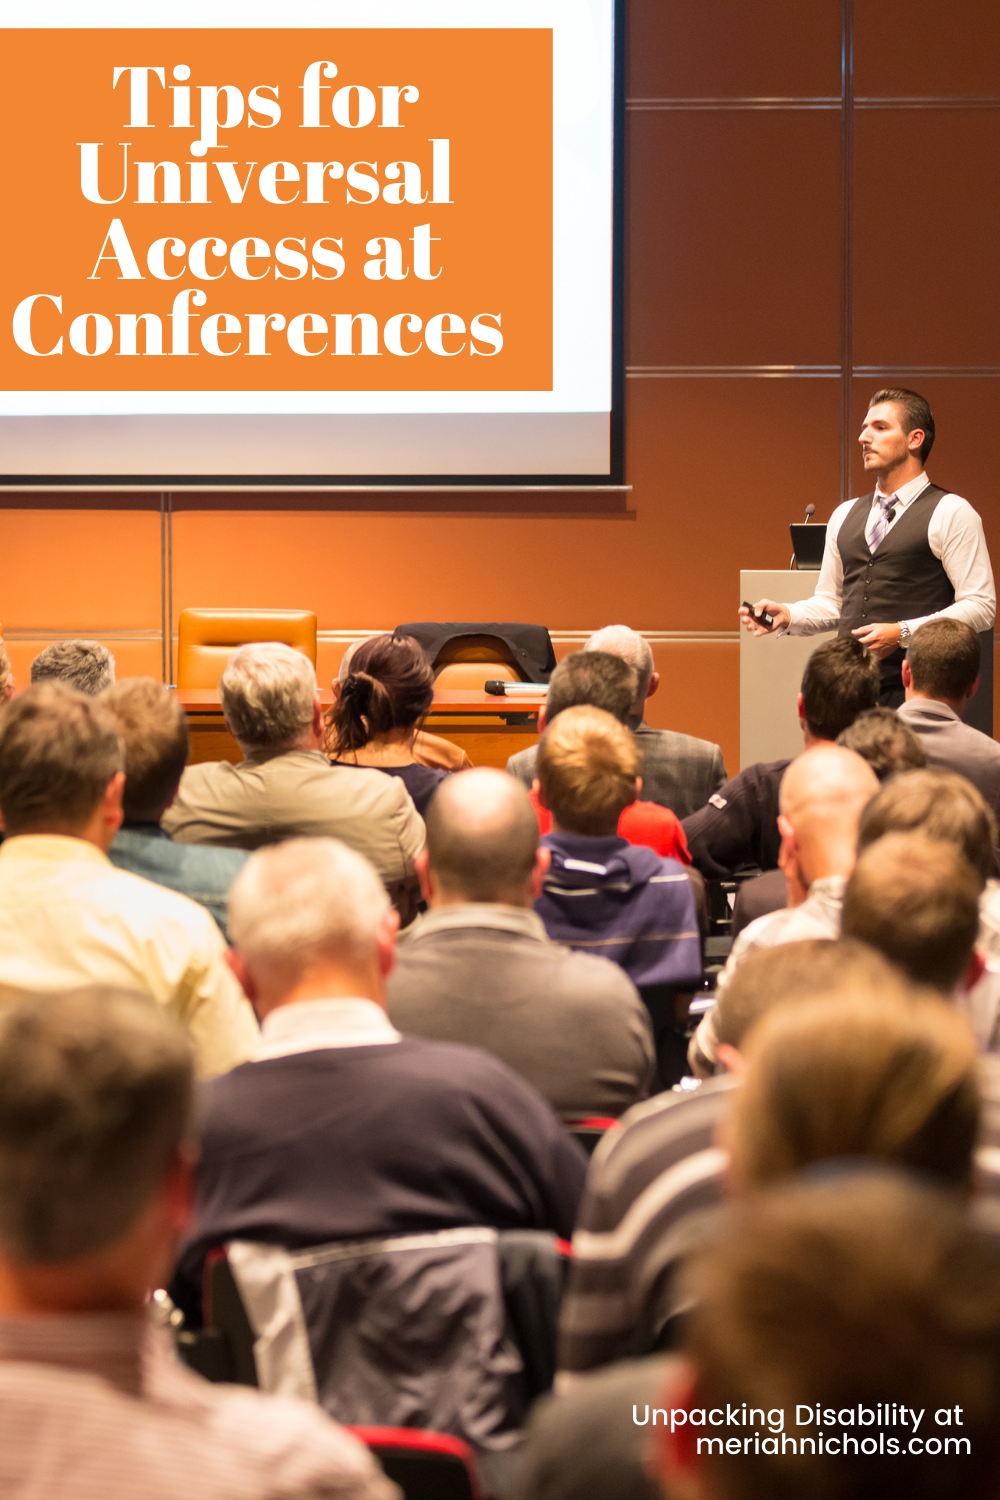 tips for universal access at conferences